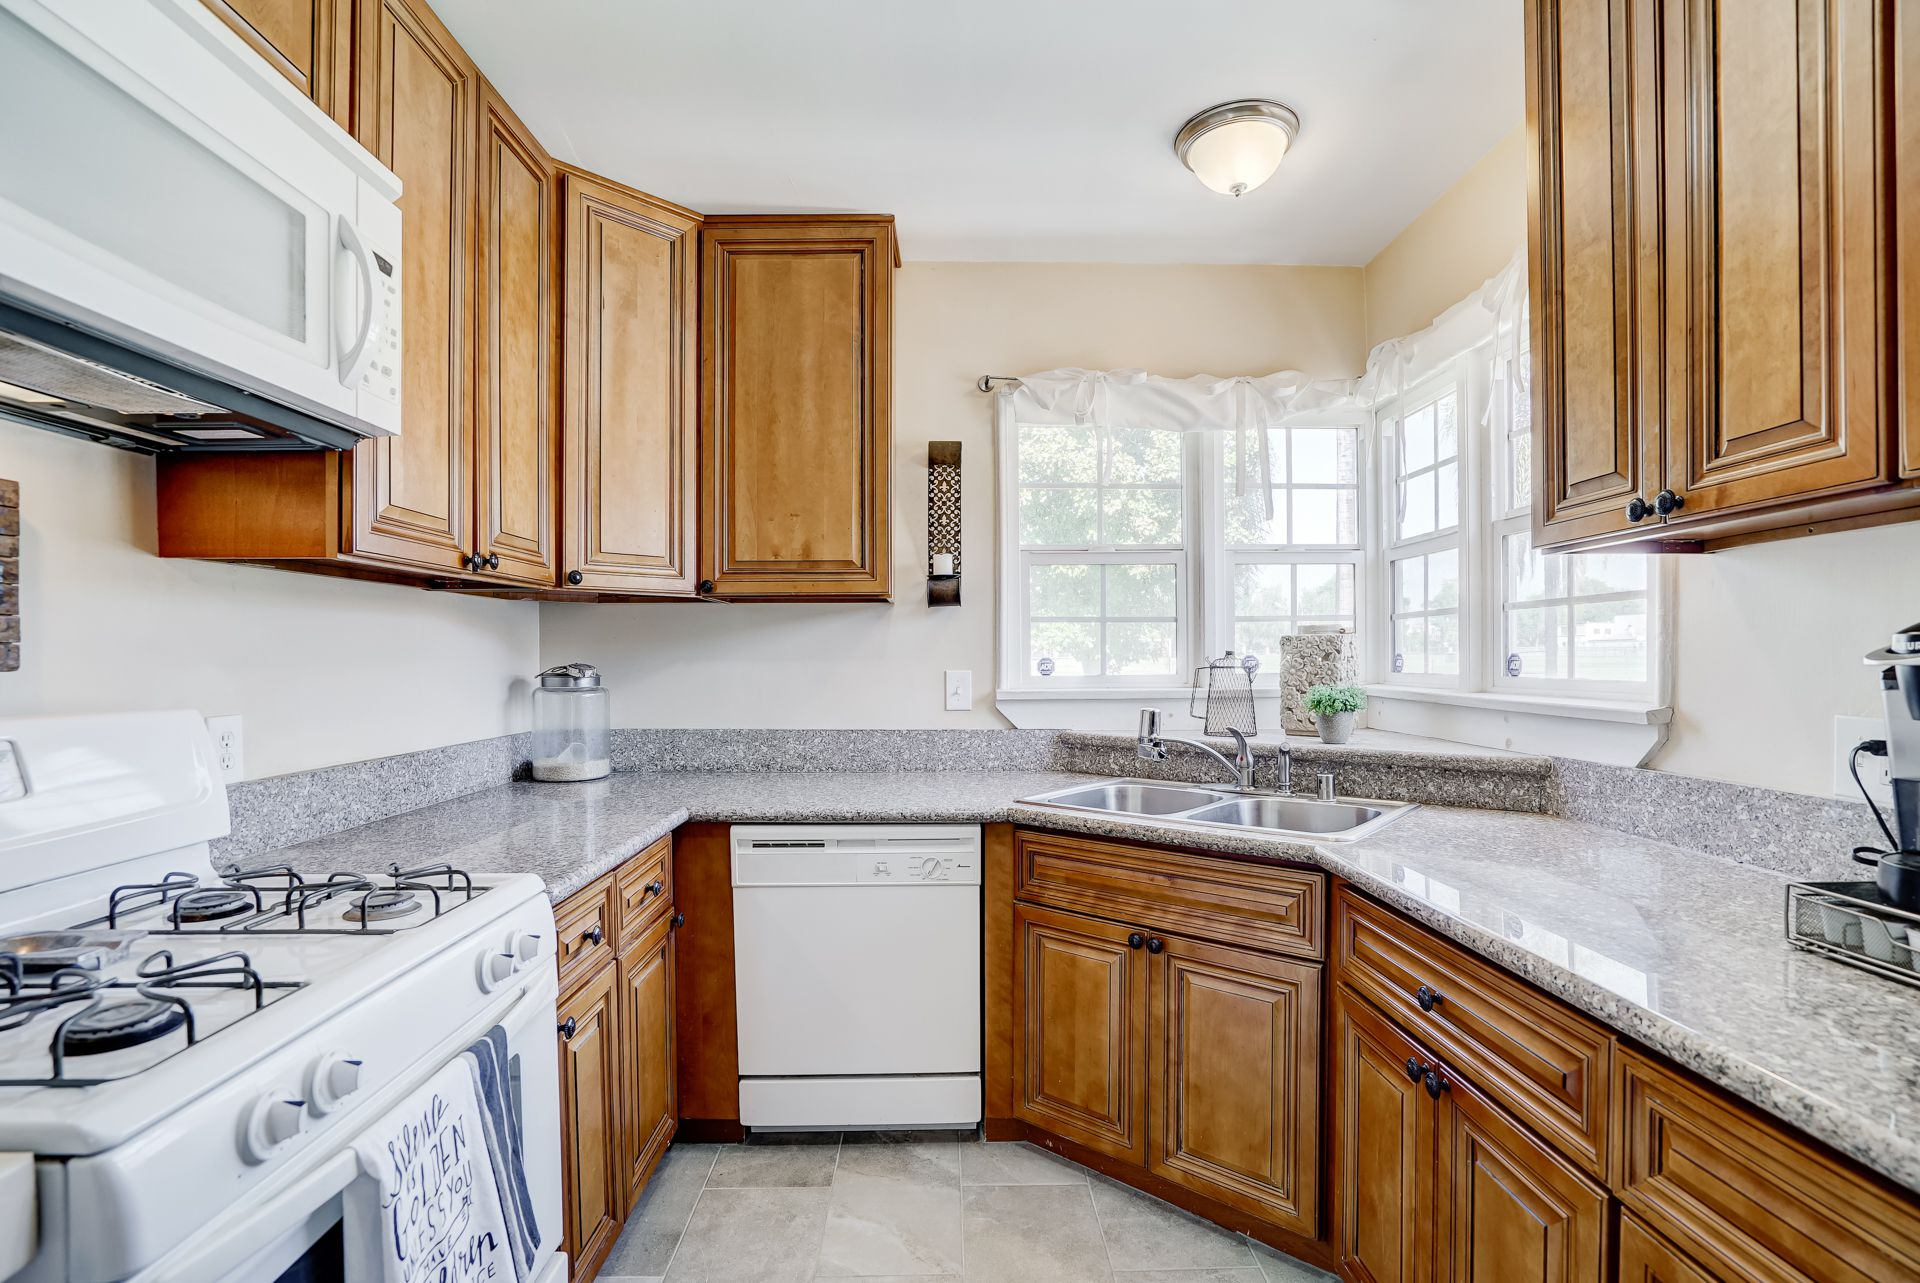 Updated kitchen with granite counter tops, new flooring, dishwasher, gas stove, built-in microwave, and corner sink with double pane windows.